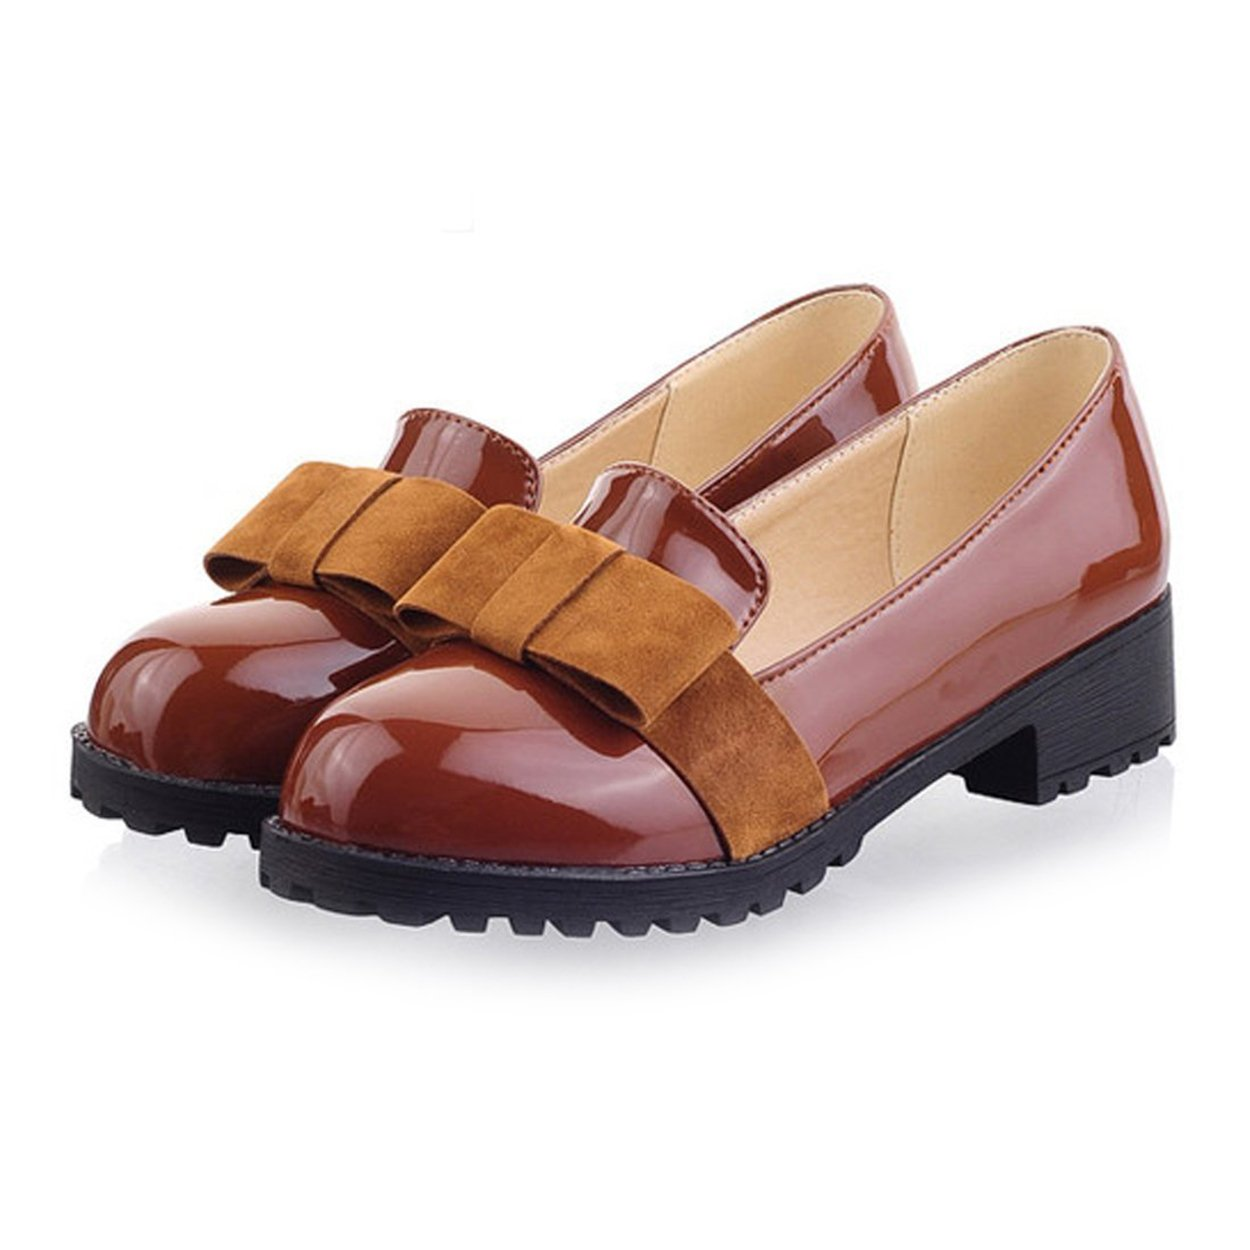 Susanny Women's Round Toe Patent Leather Slip on Shoes Sweet Bow Mid Heel Brown Oxfords Loafers Shoes 8.5 B (M) US